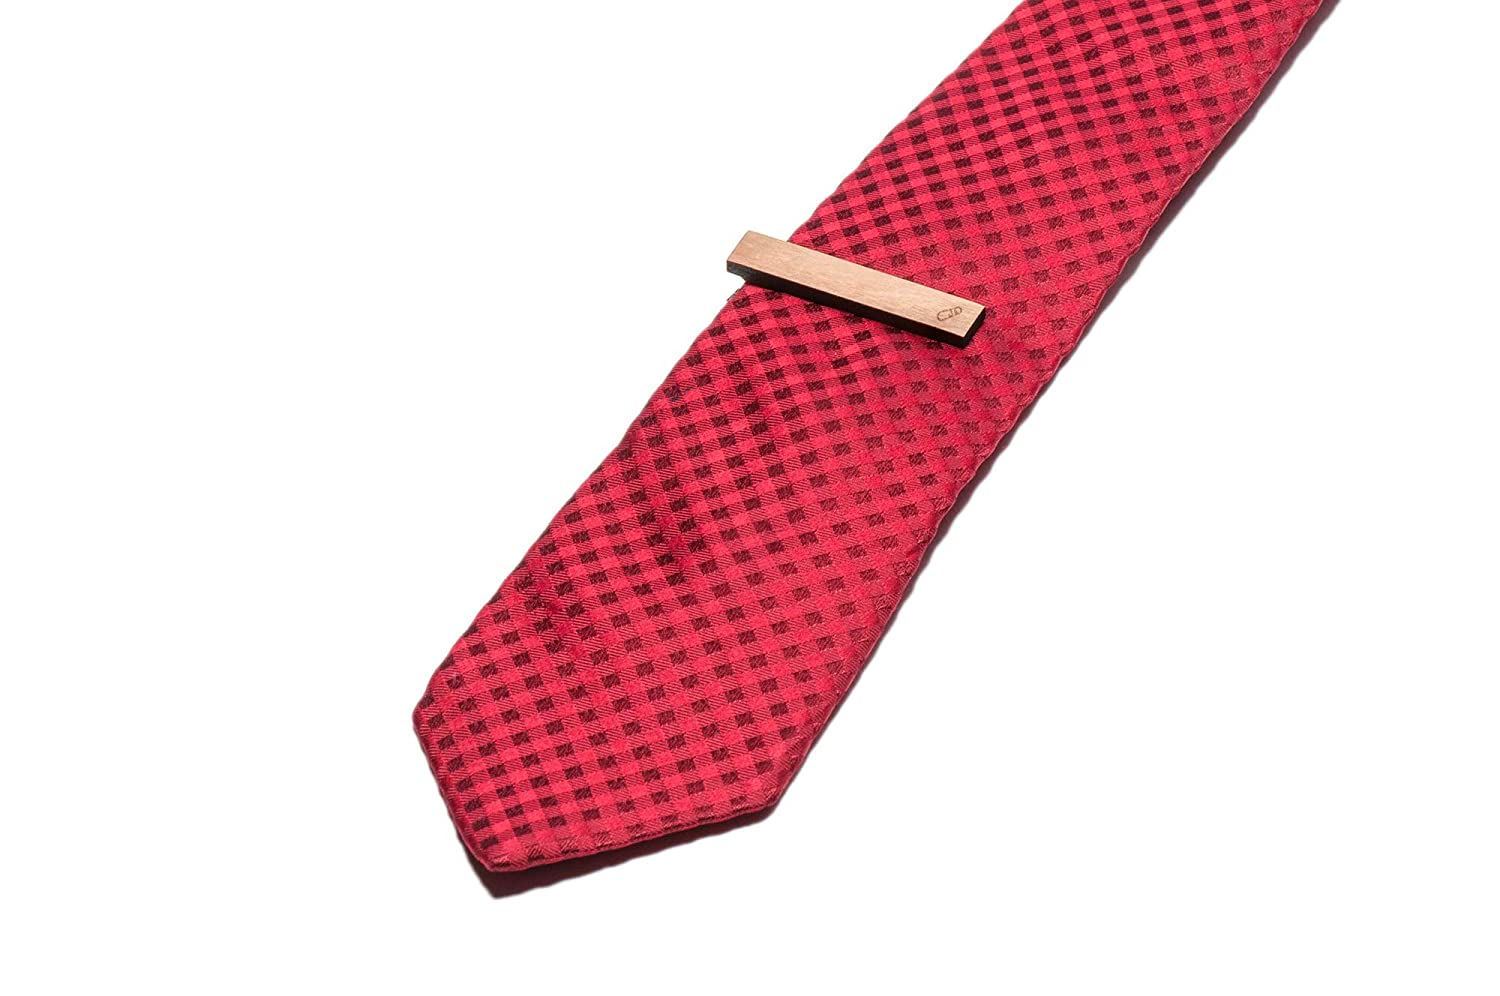 Cherry Wood Tie Bar Engraved in The USA Wooden Accessories Company Wooden Tie Clips with Laser Engraved Salt Design